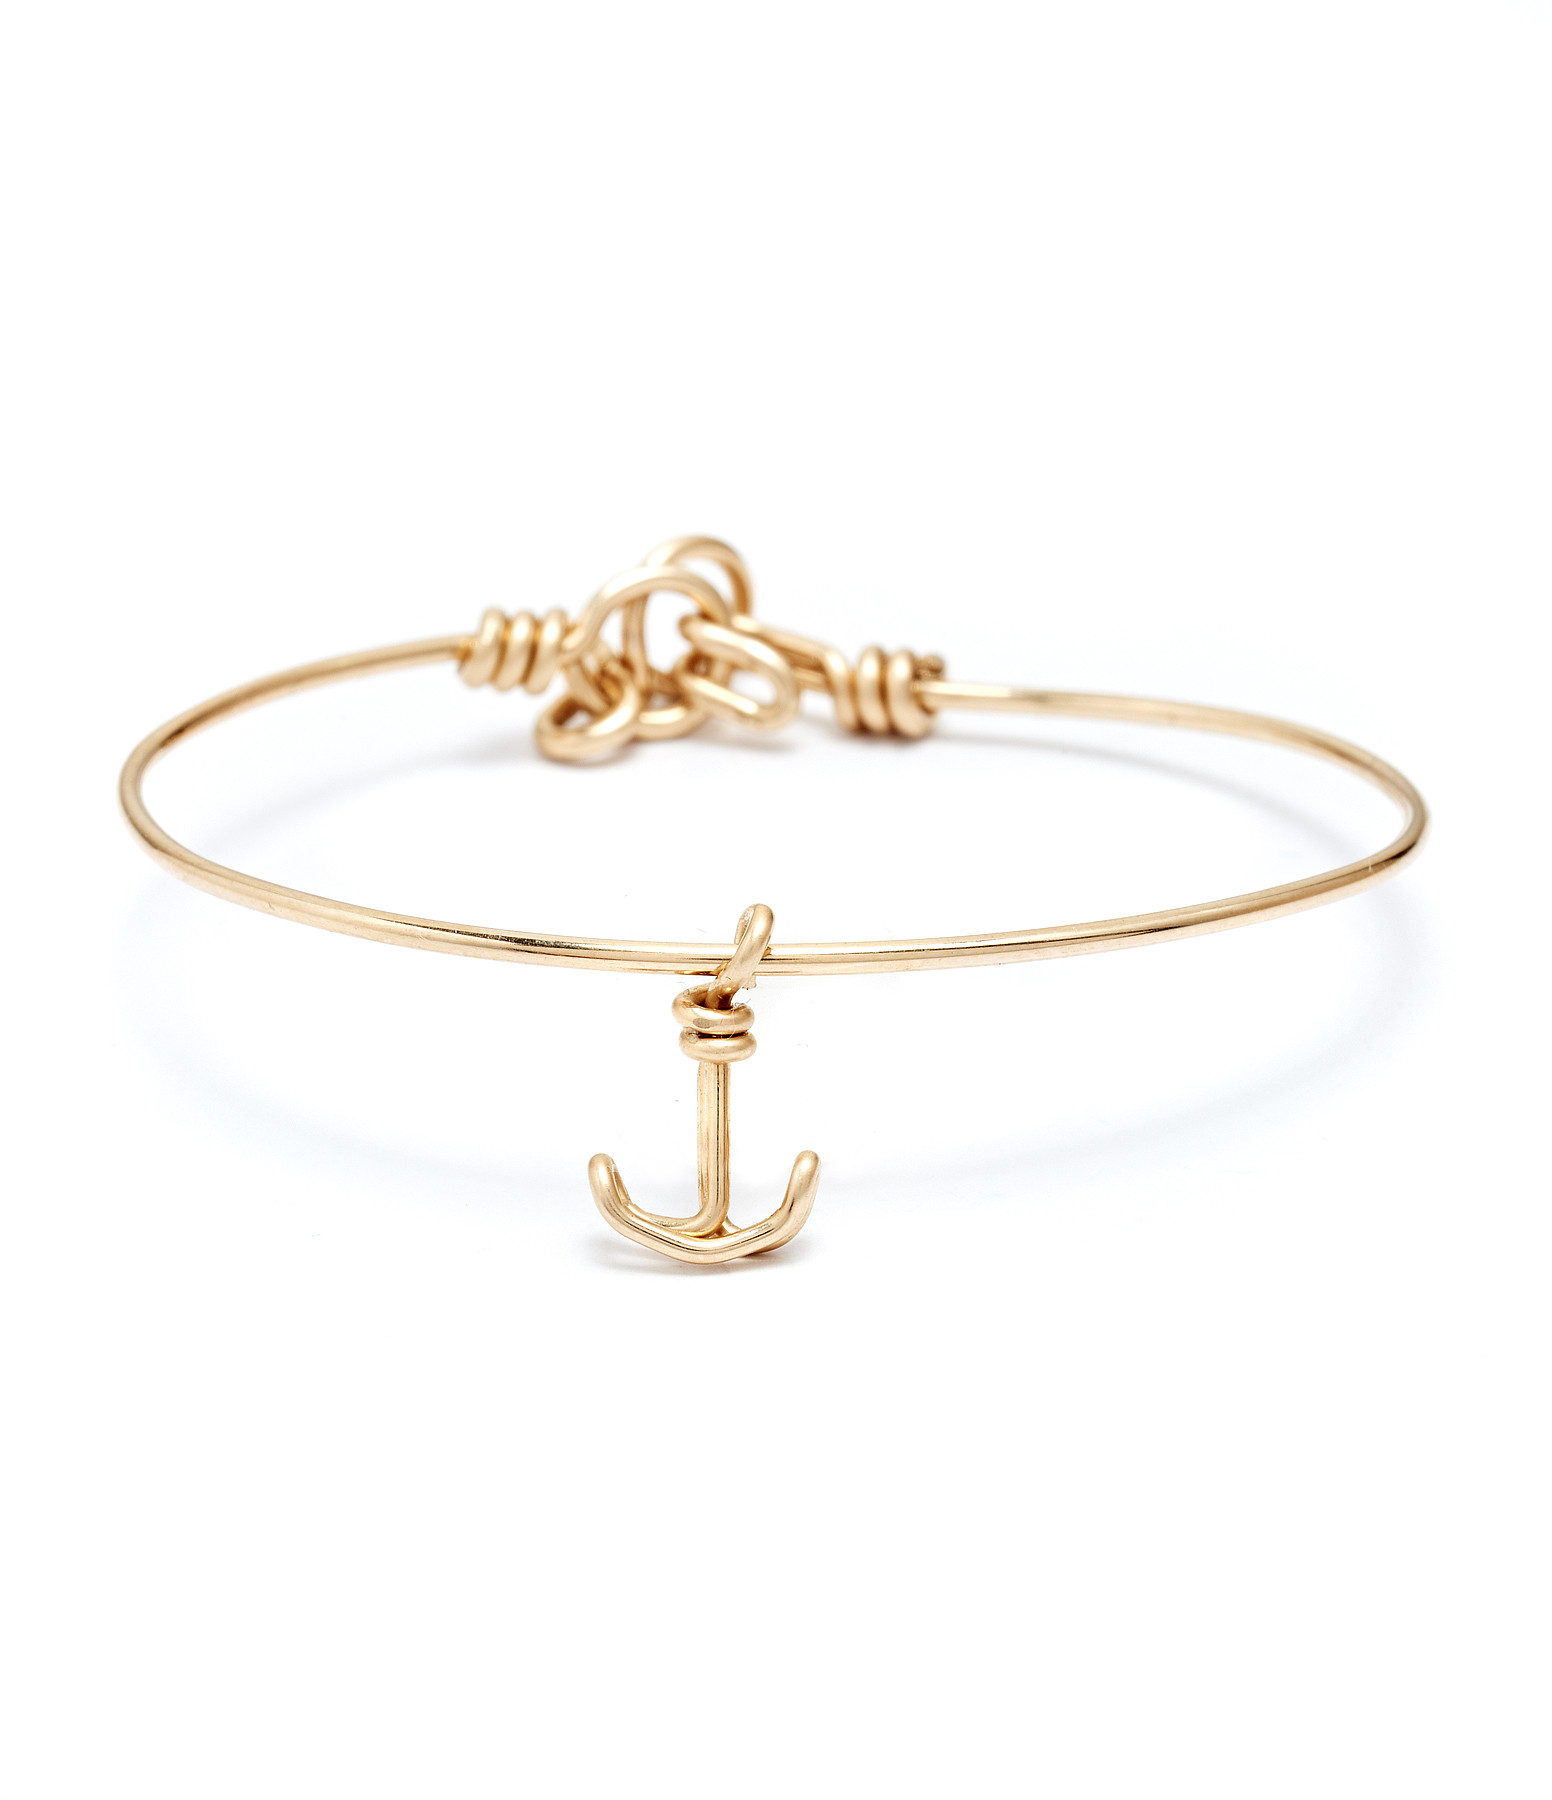 ATELIER PAULIN - Jonc Pampille Charm Ancre Gold Filled Jaune